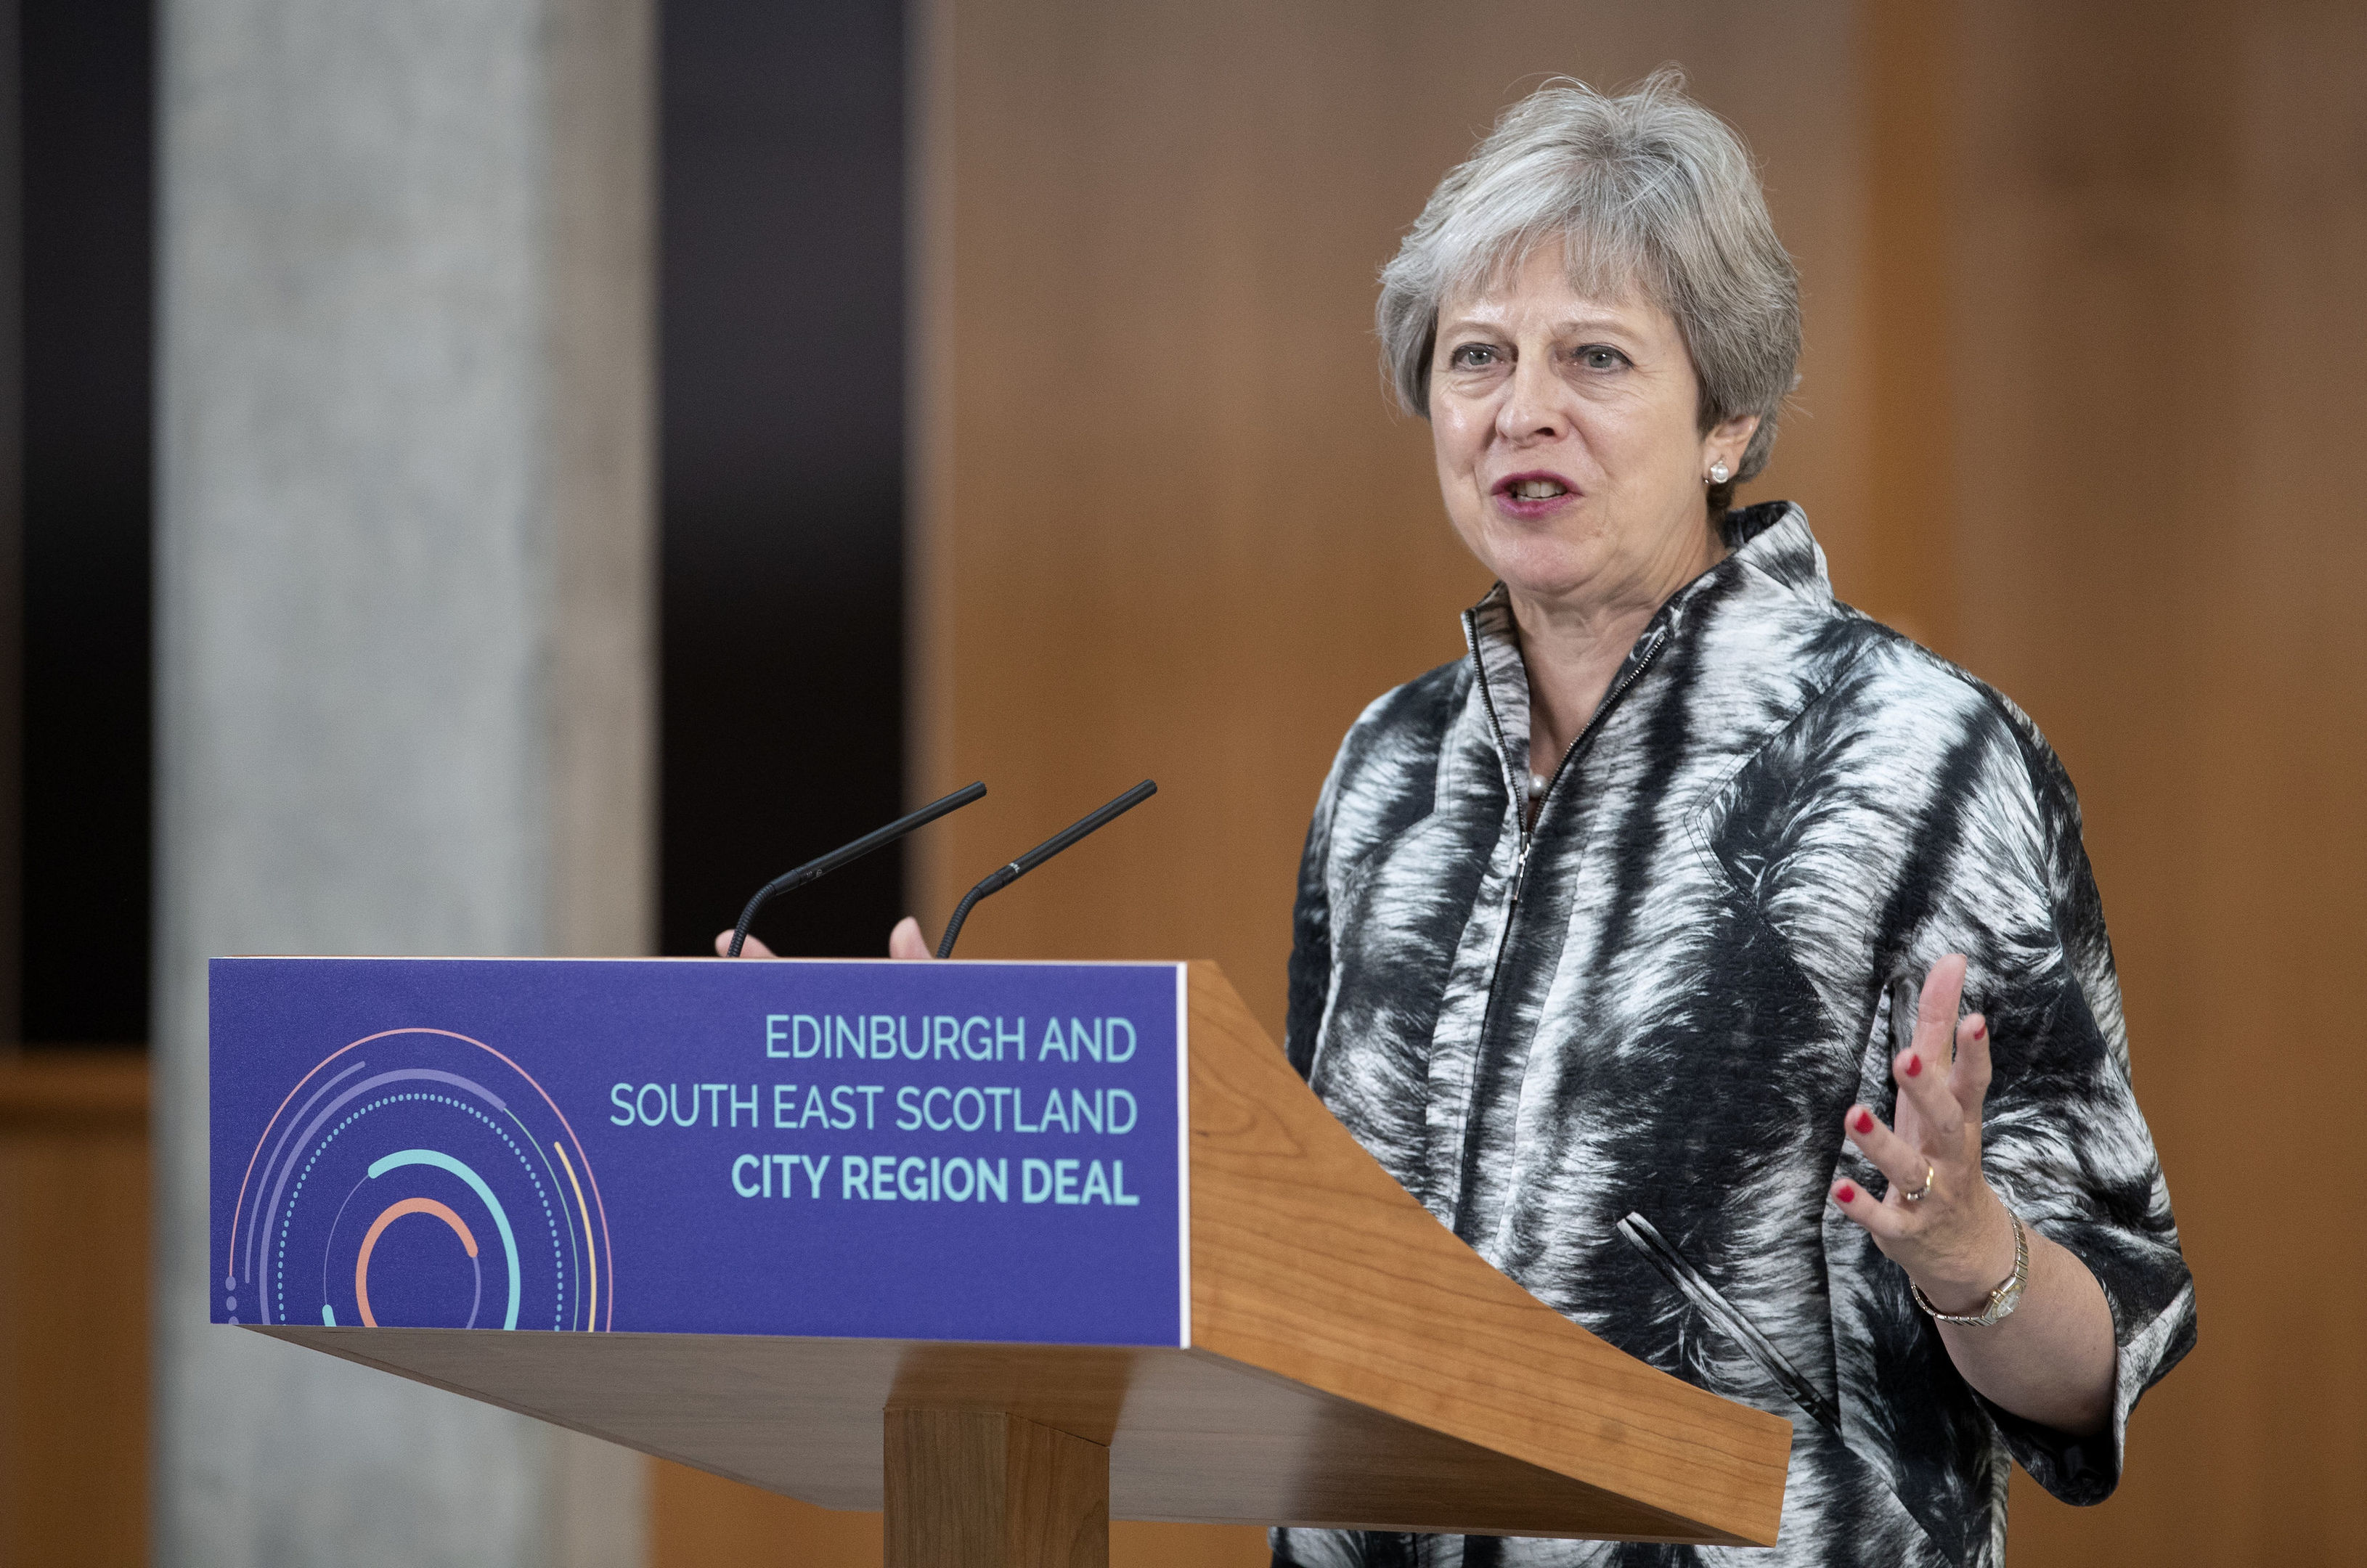 Prime Minister Theresa May speaks at the University of Edinburgh before signing the Edinburgh and South East Scotland City Region Deal